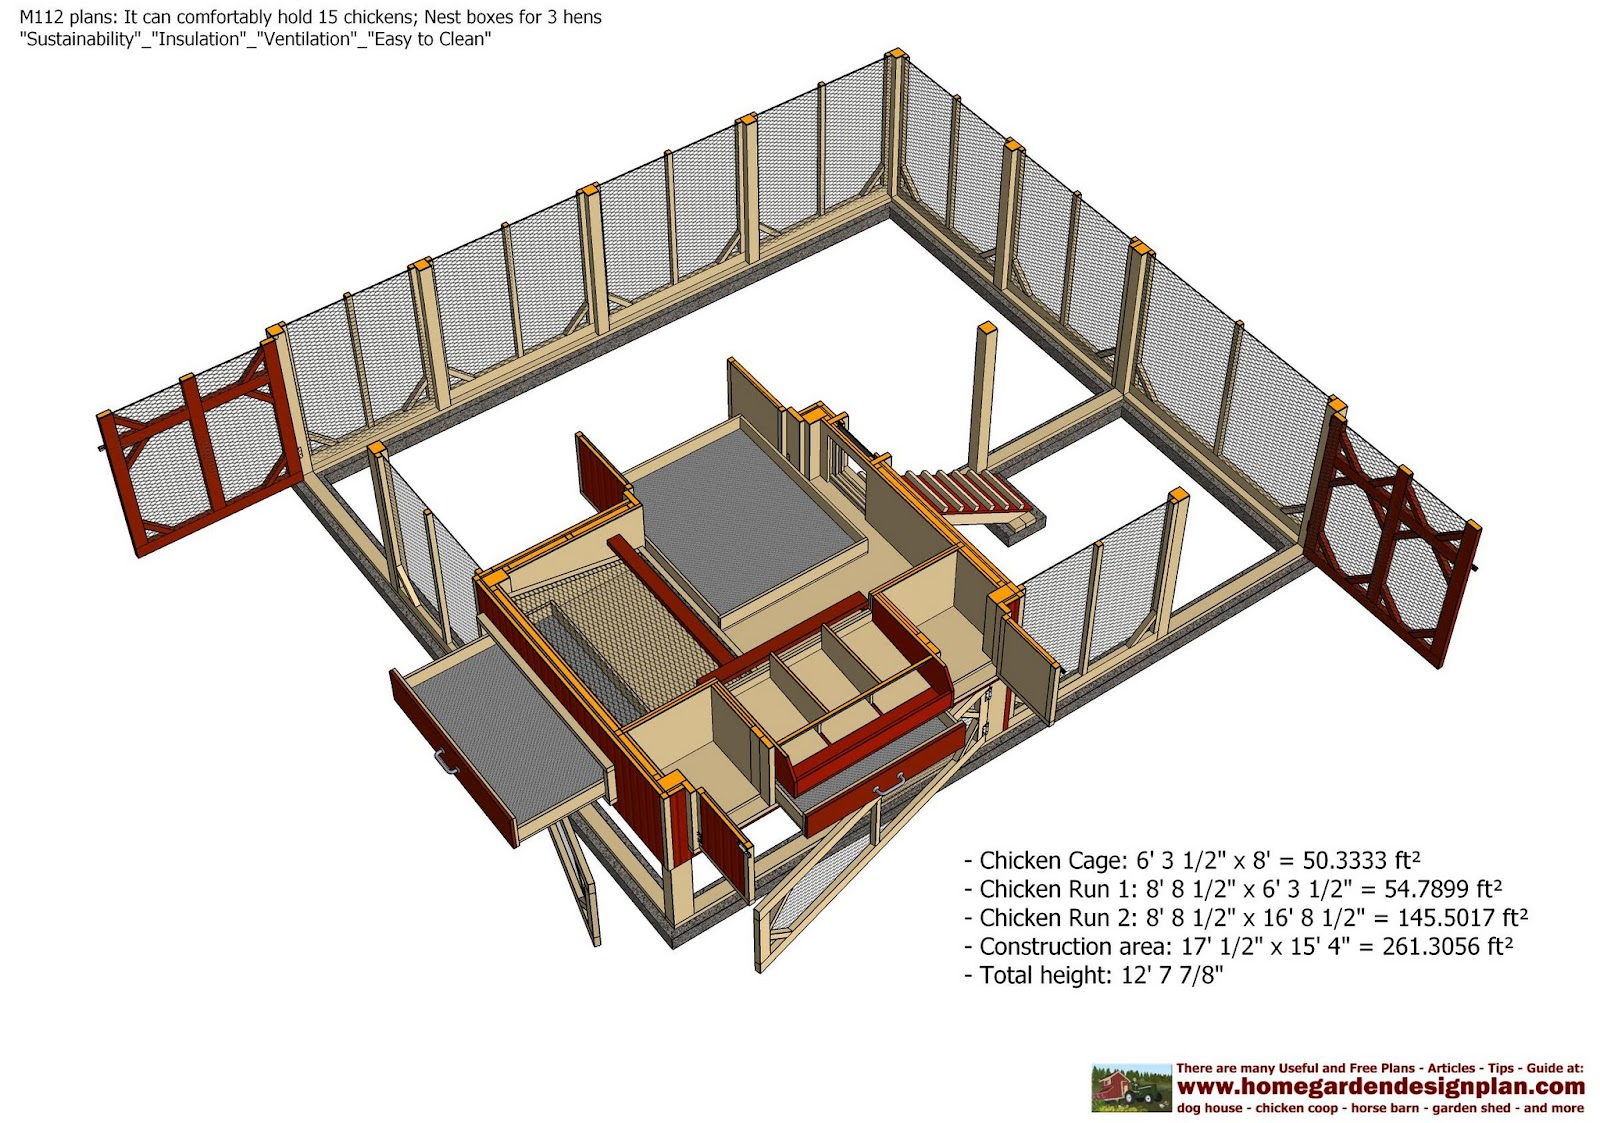 Home garden plans m112 chicken coop plans construction for Chicken coop plans free